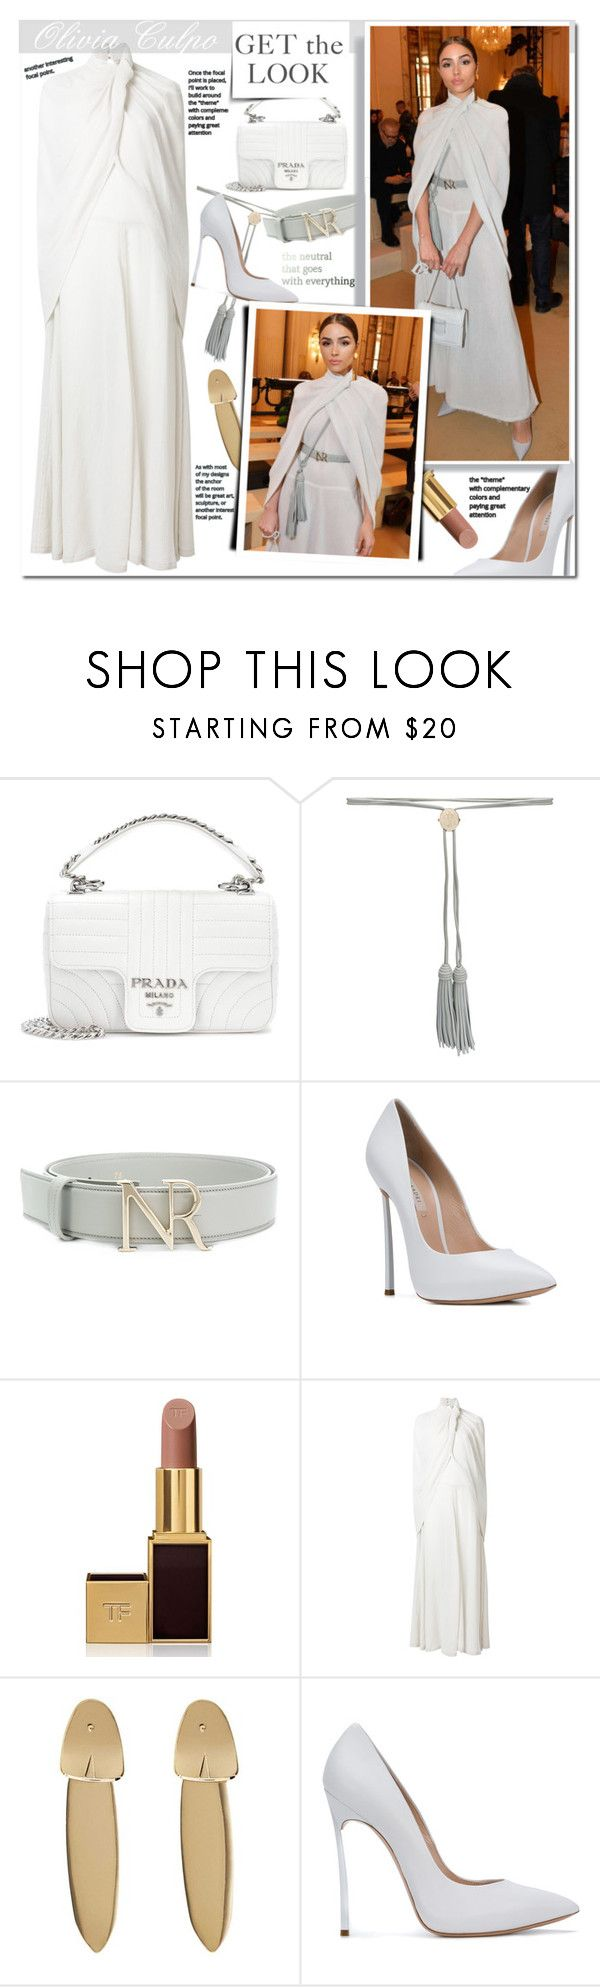 """Olivia Culpo"" by mery90 ❤ liked on Polyvore featuring Prada, Nina Ricci, Casadei, Tom Ford, MANGO, GetTheLook and CelebrityStyle"